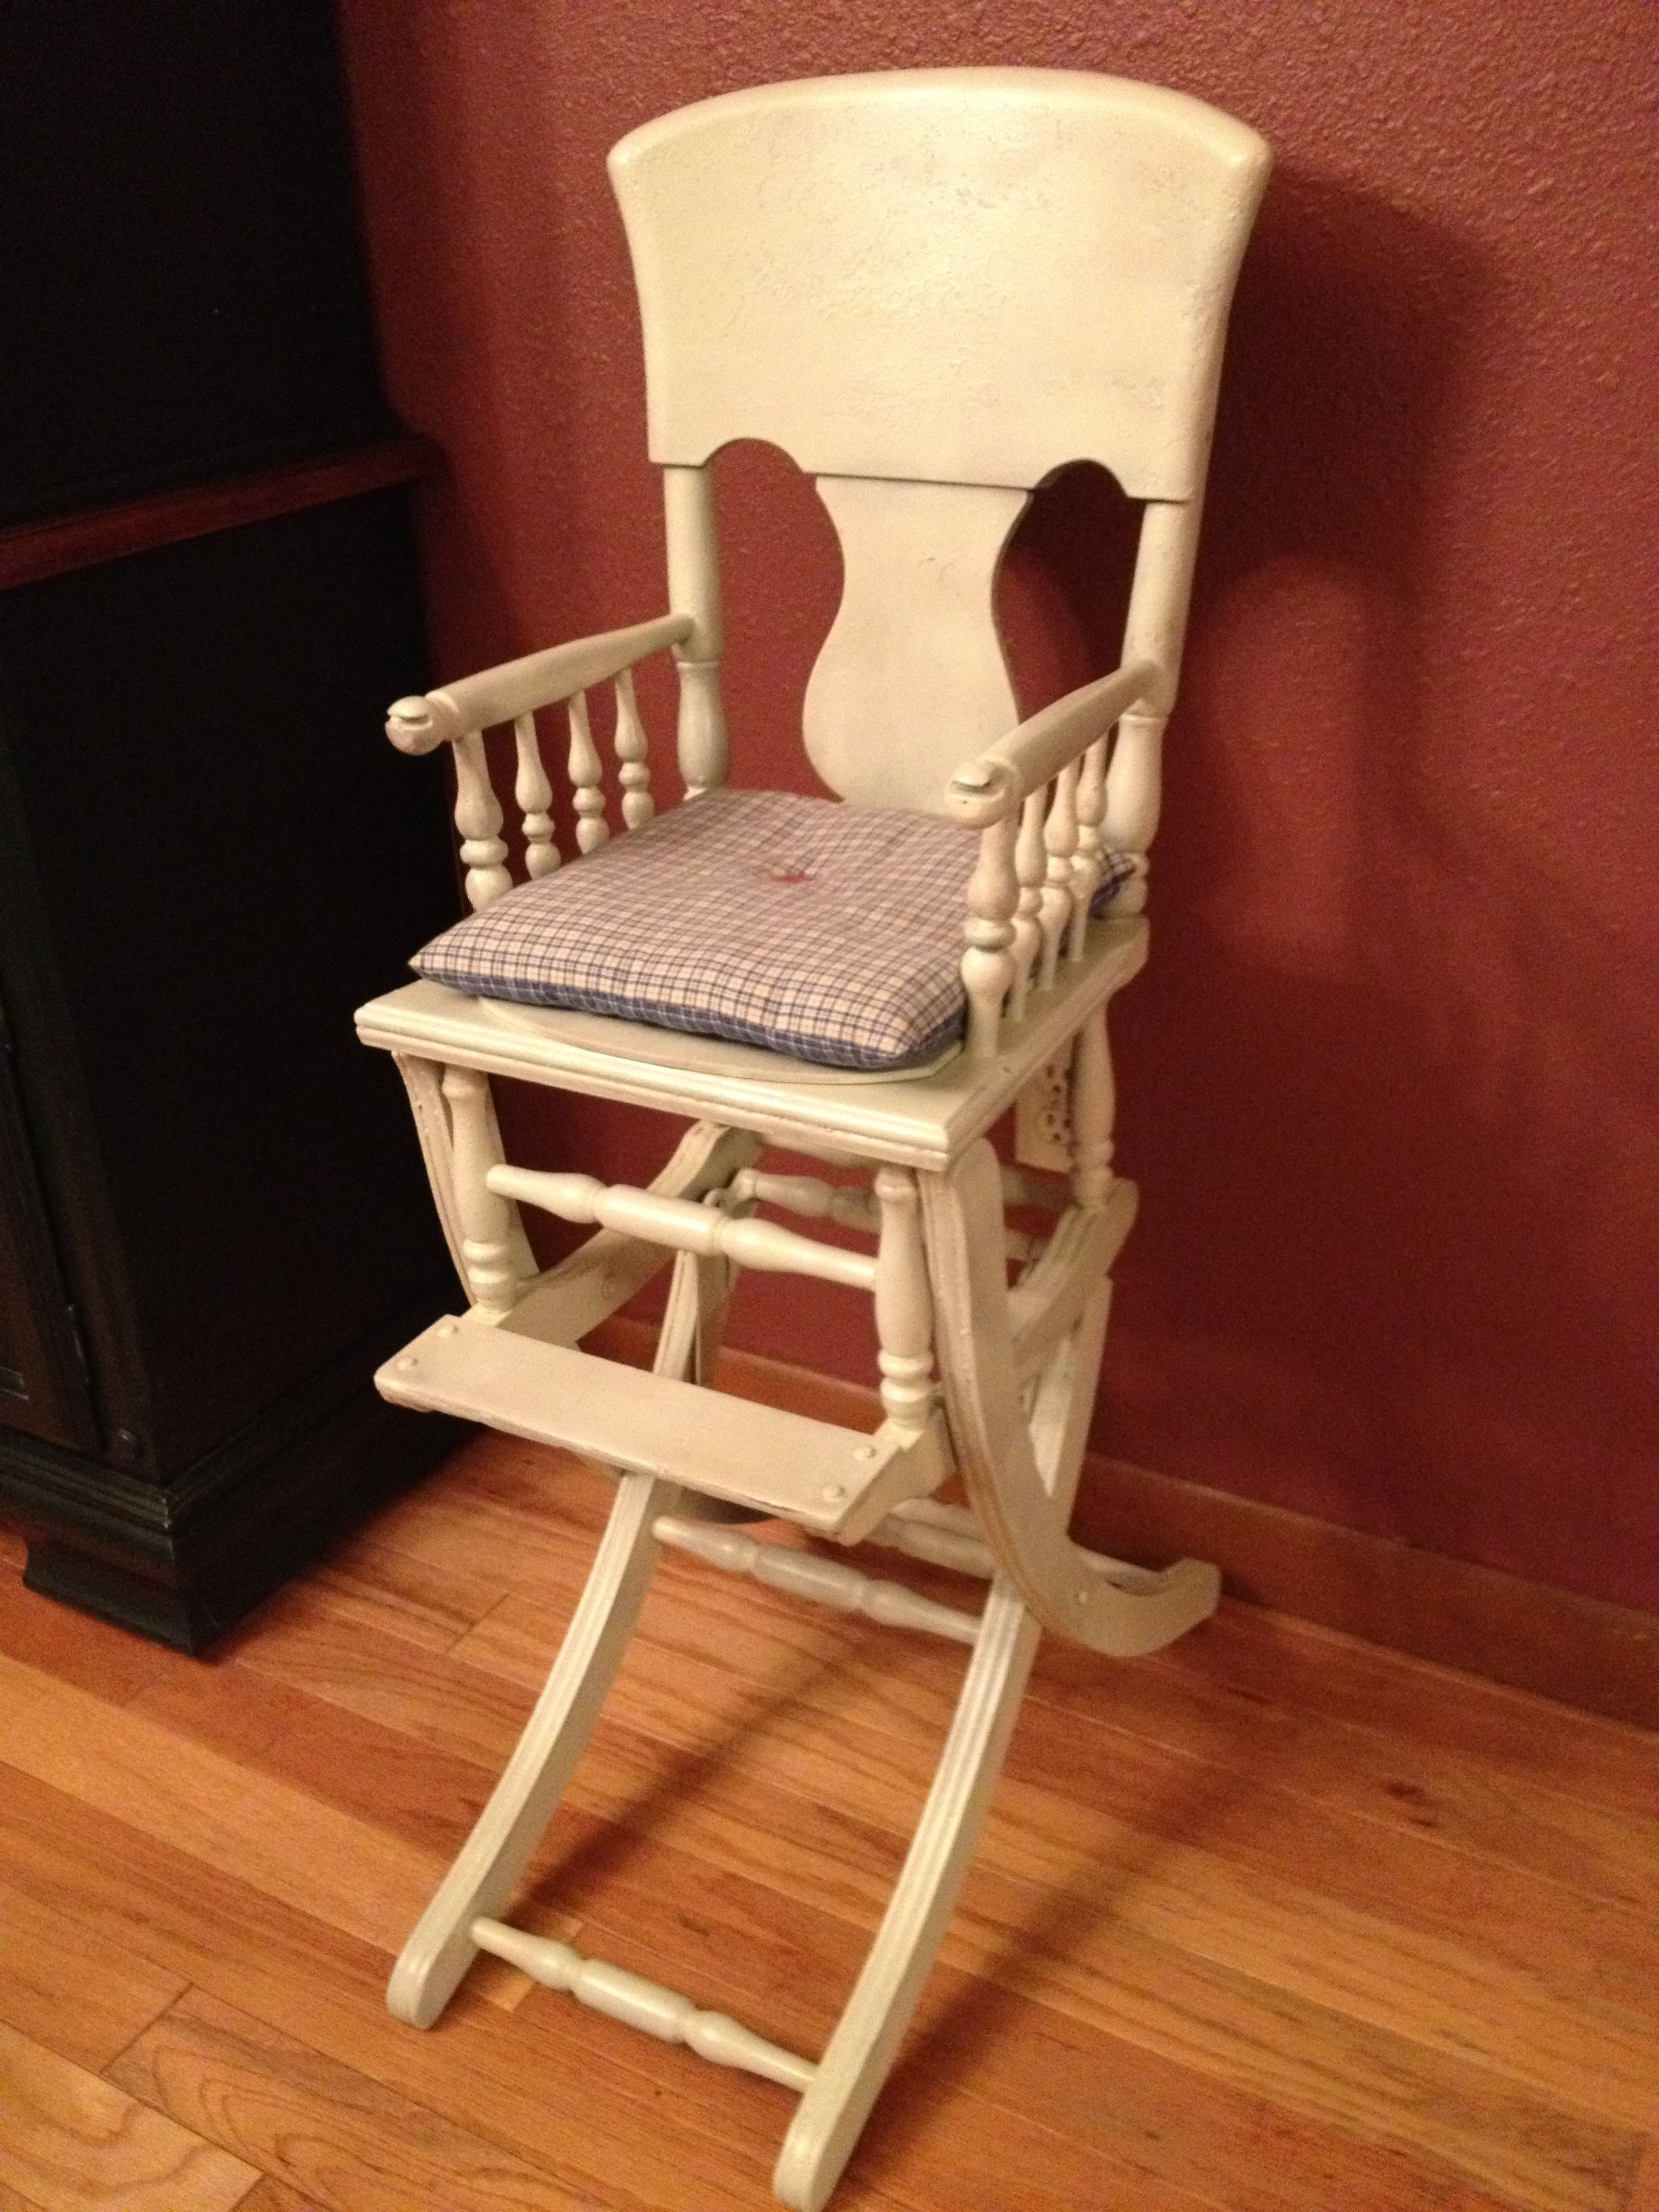 Antique high chair converts to rocking chair - Antique High Chair That Converts To Rocker